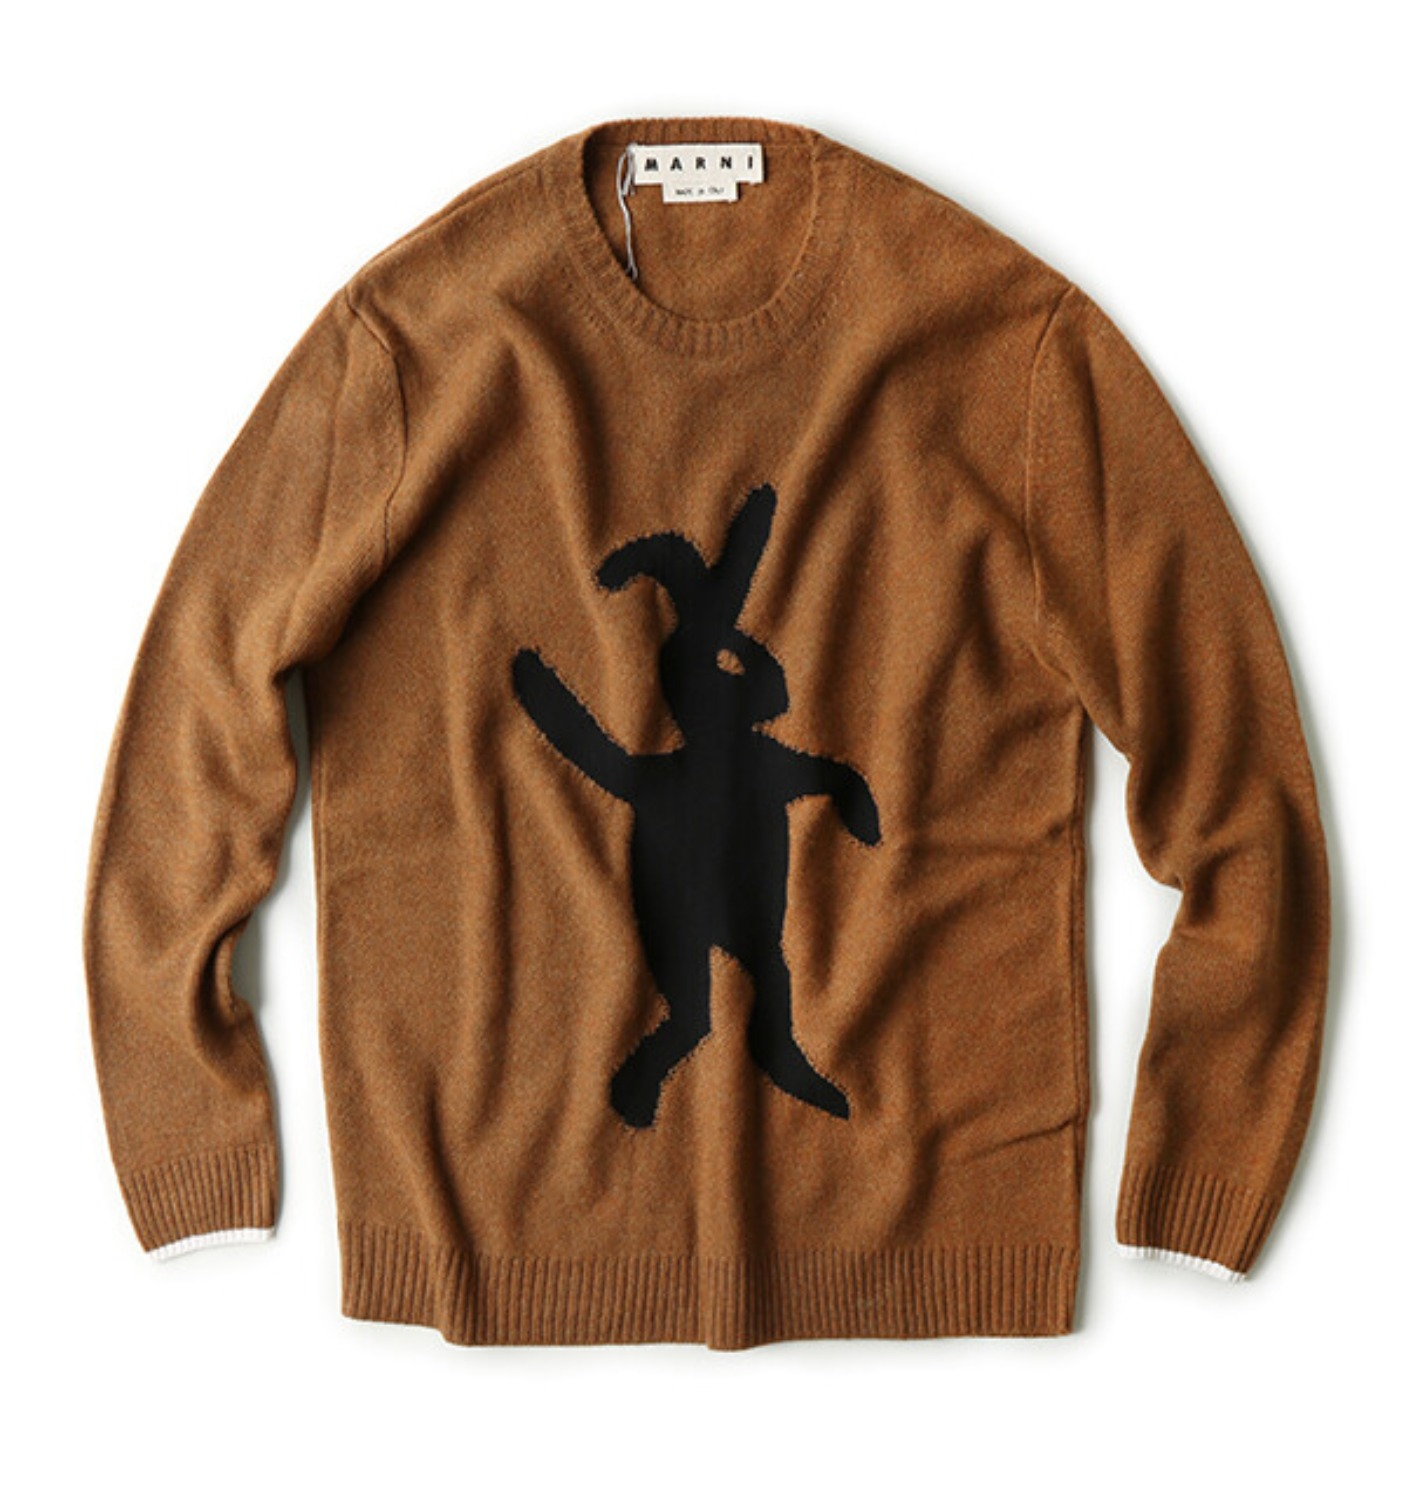 CREW NECK SWEATER BROWN